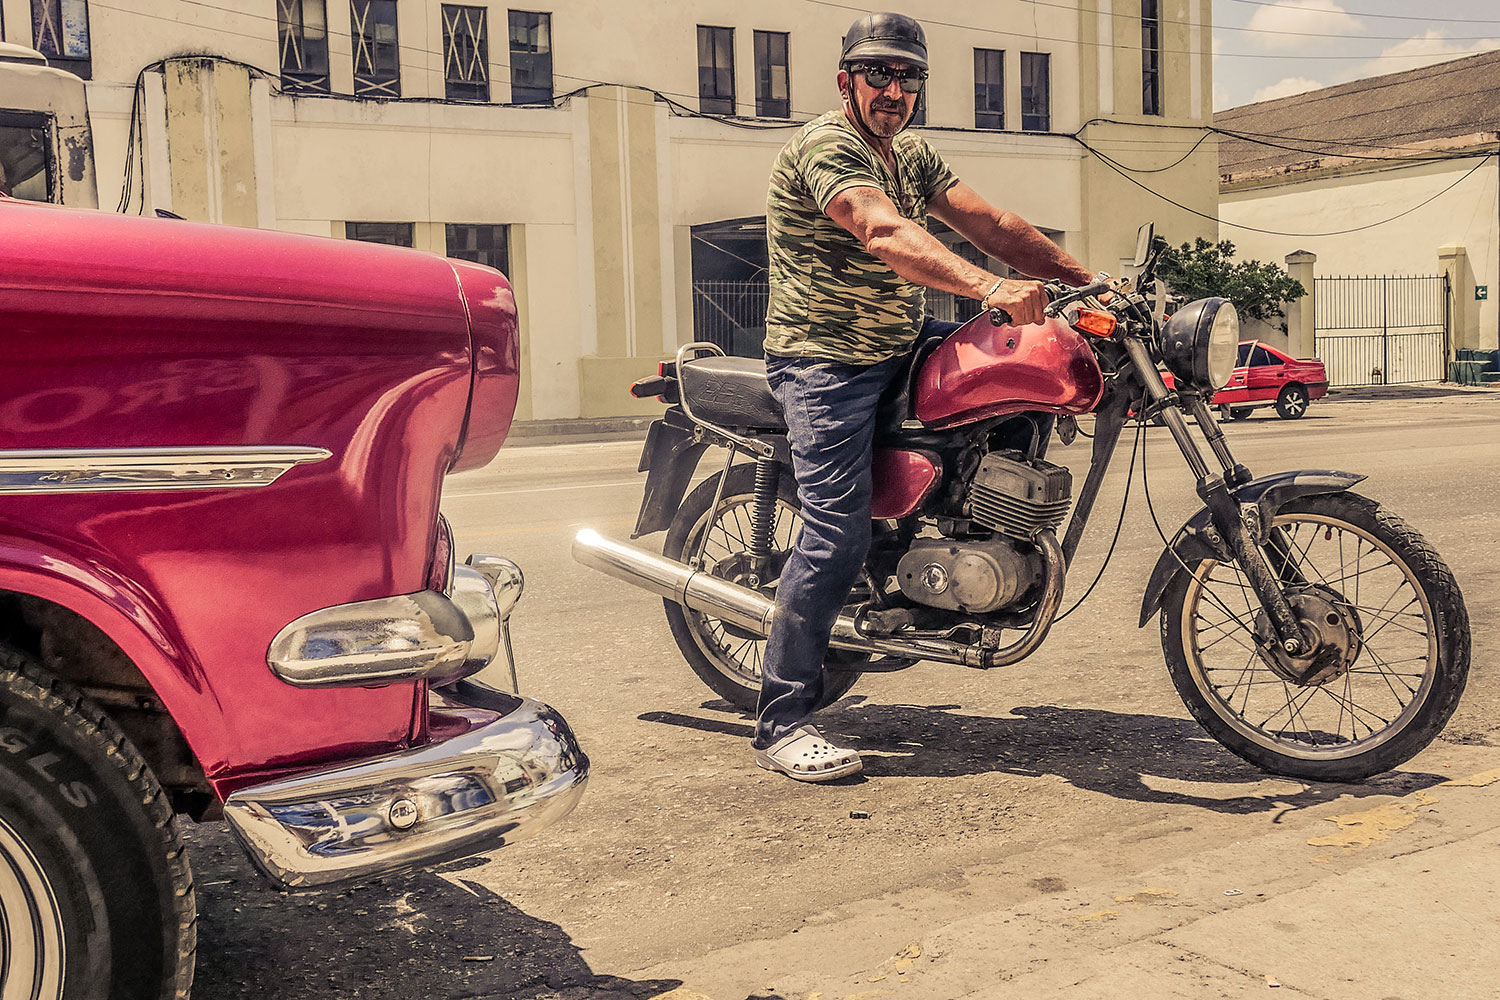 Cuban guy in Resurgence Gears, Pekev® Lite, Dark Blue motorcycle jeans - Picture by Dean Saffron 2